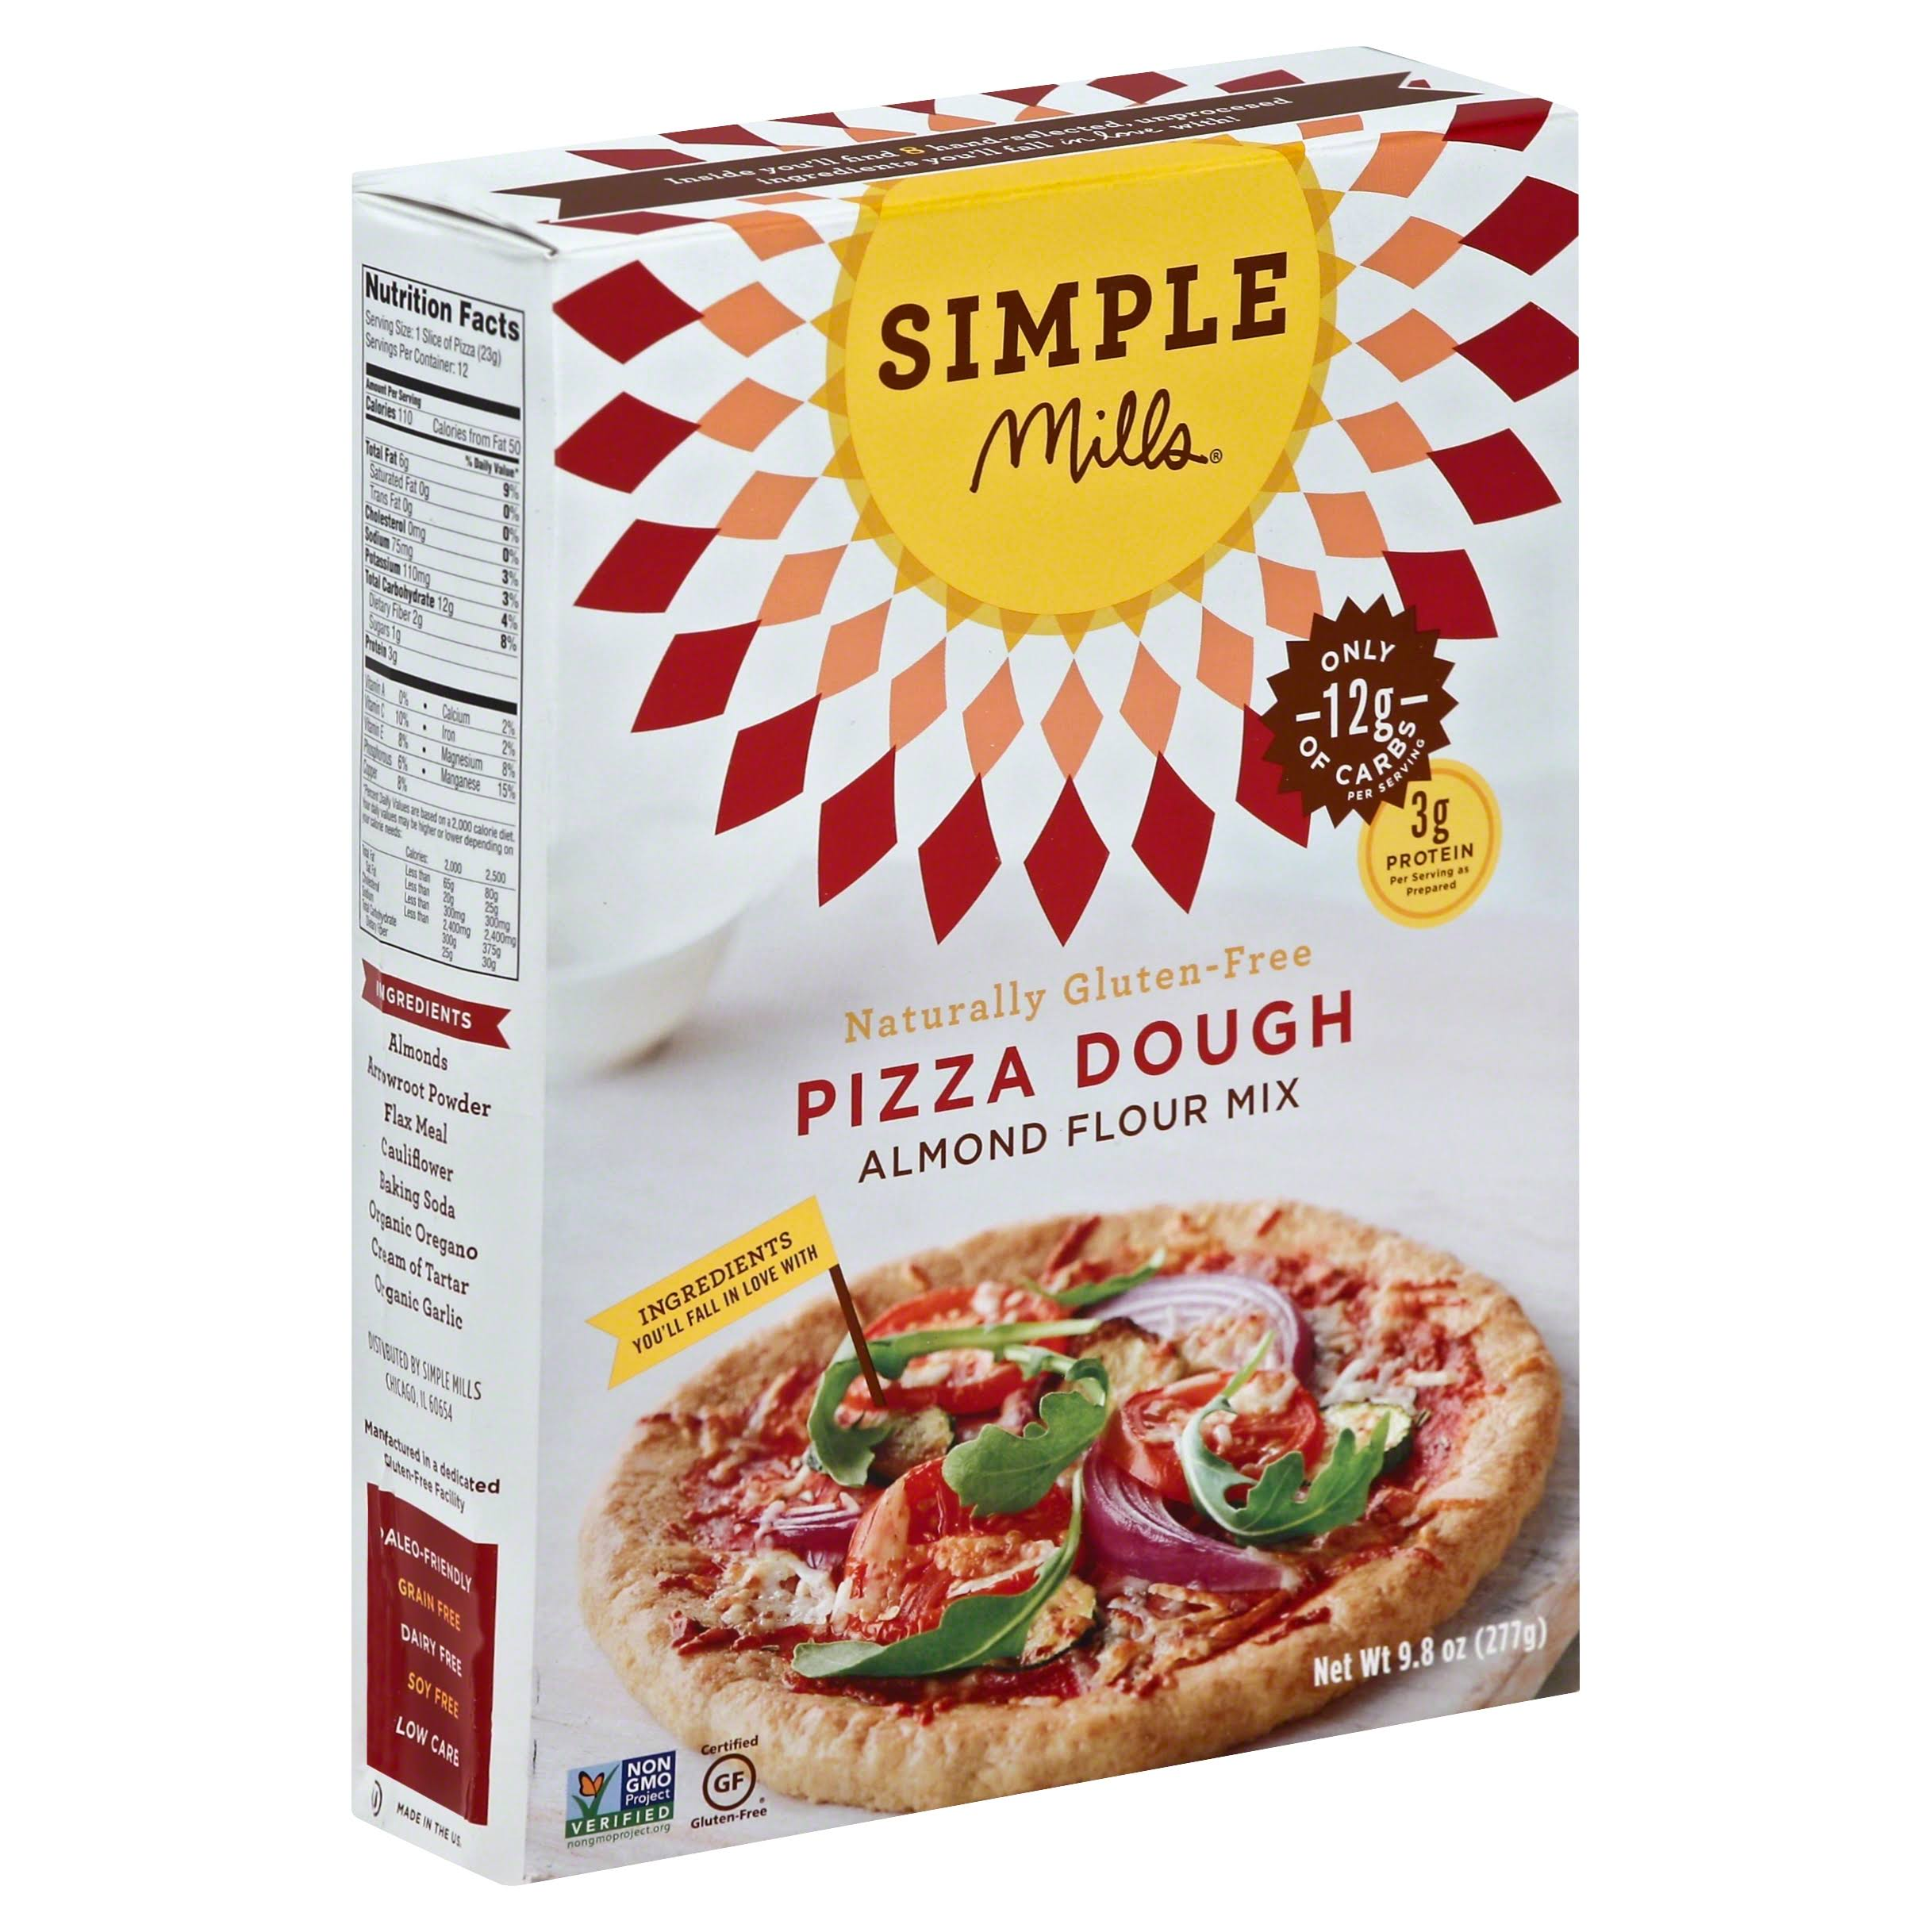 Naturally Gluten Free Almond Flour Mi - Pizza Dough, 9.8oz